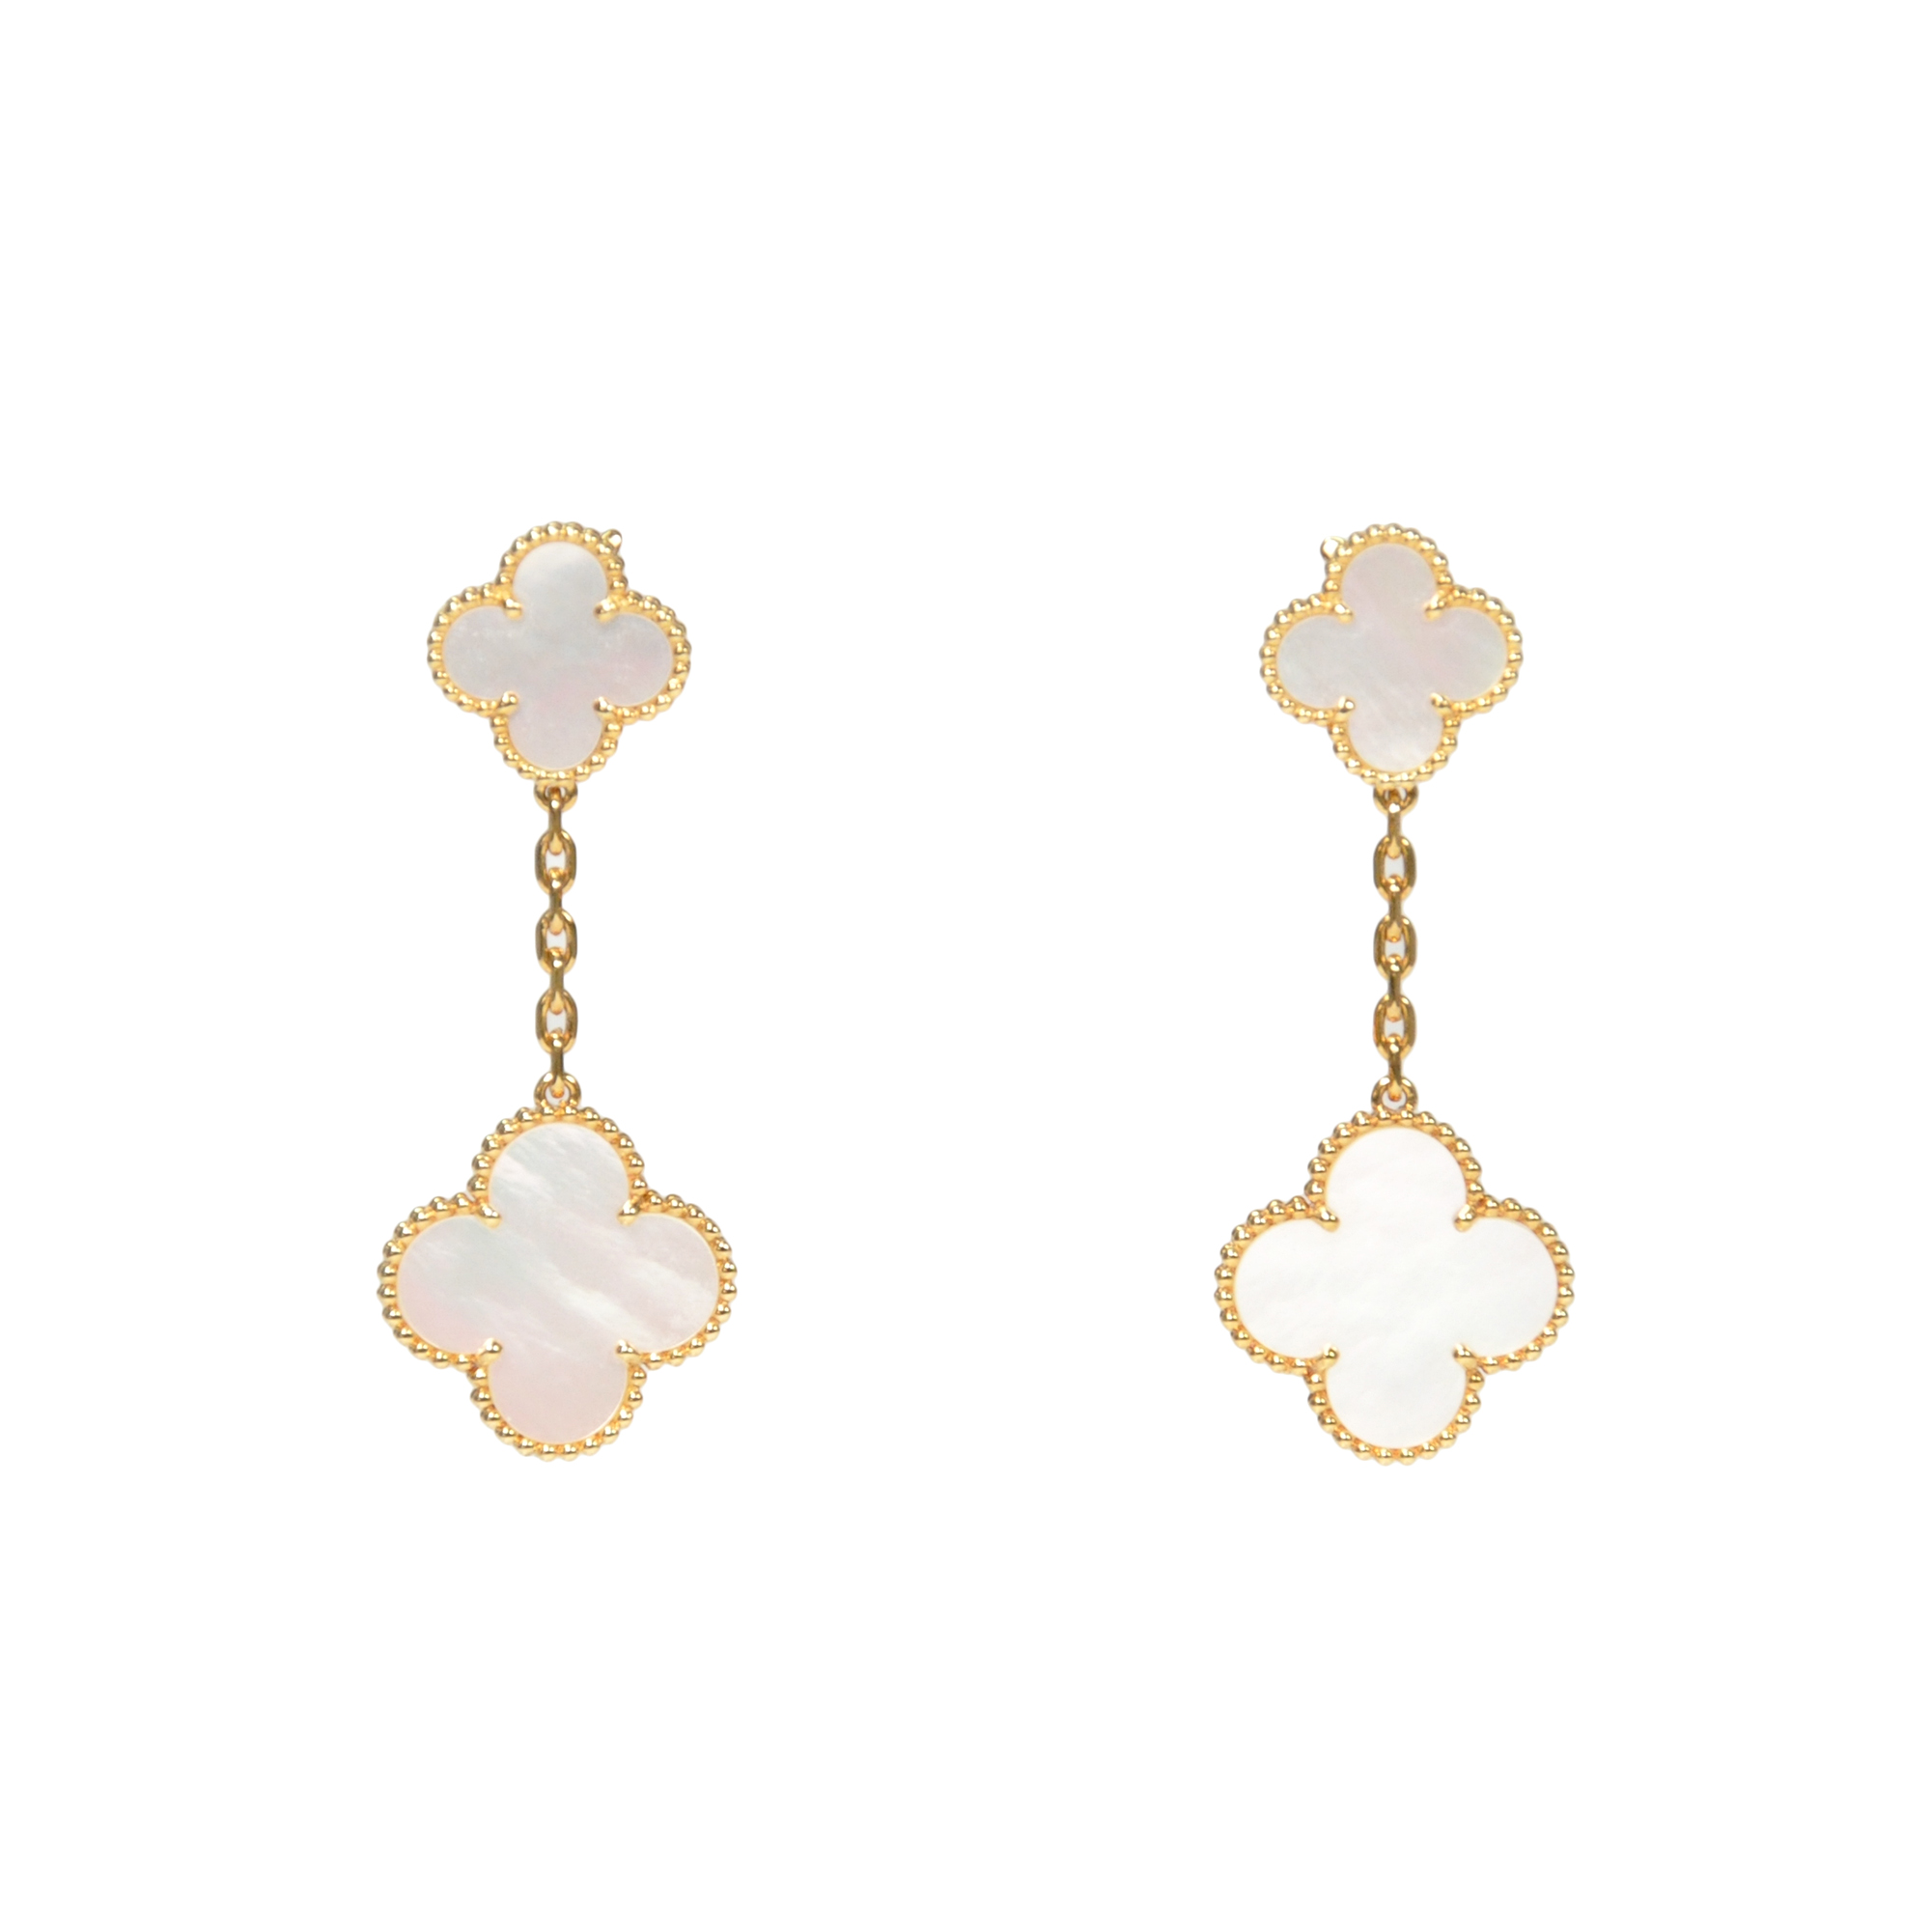 Authentic Pre Owned Van Cleef And Arpels Magic Alhambra Earrings Pss 246 00111 The Fifth Collection